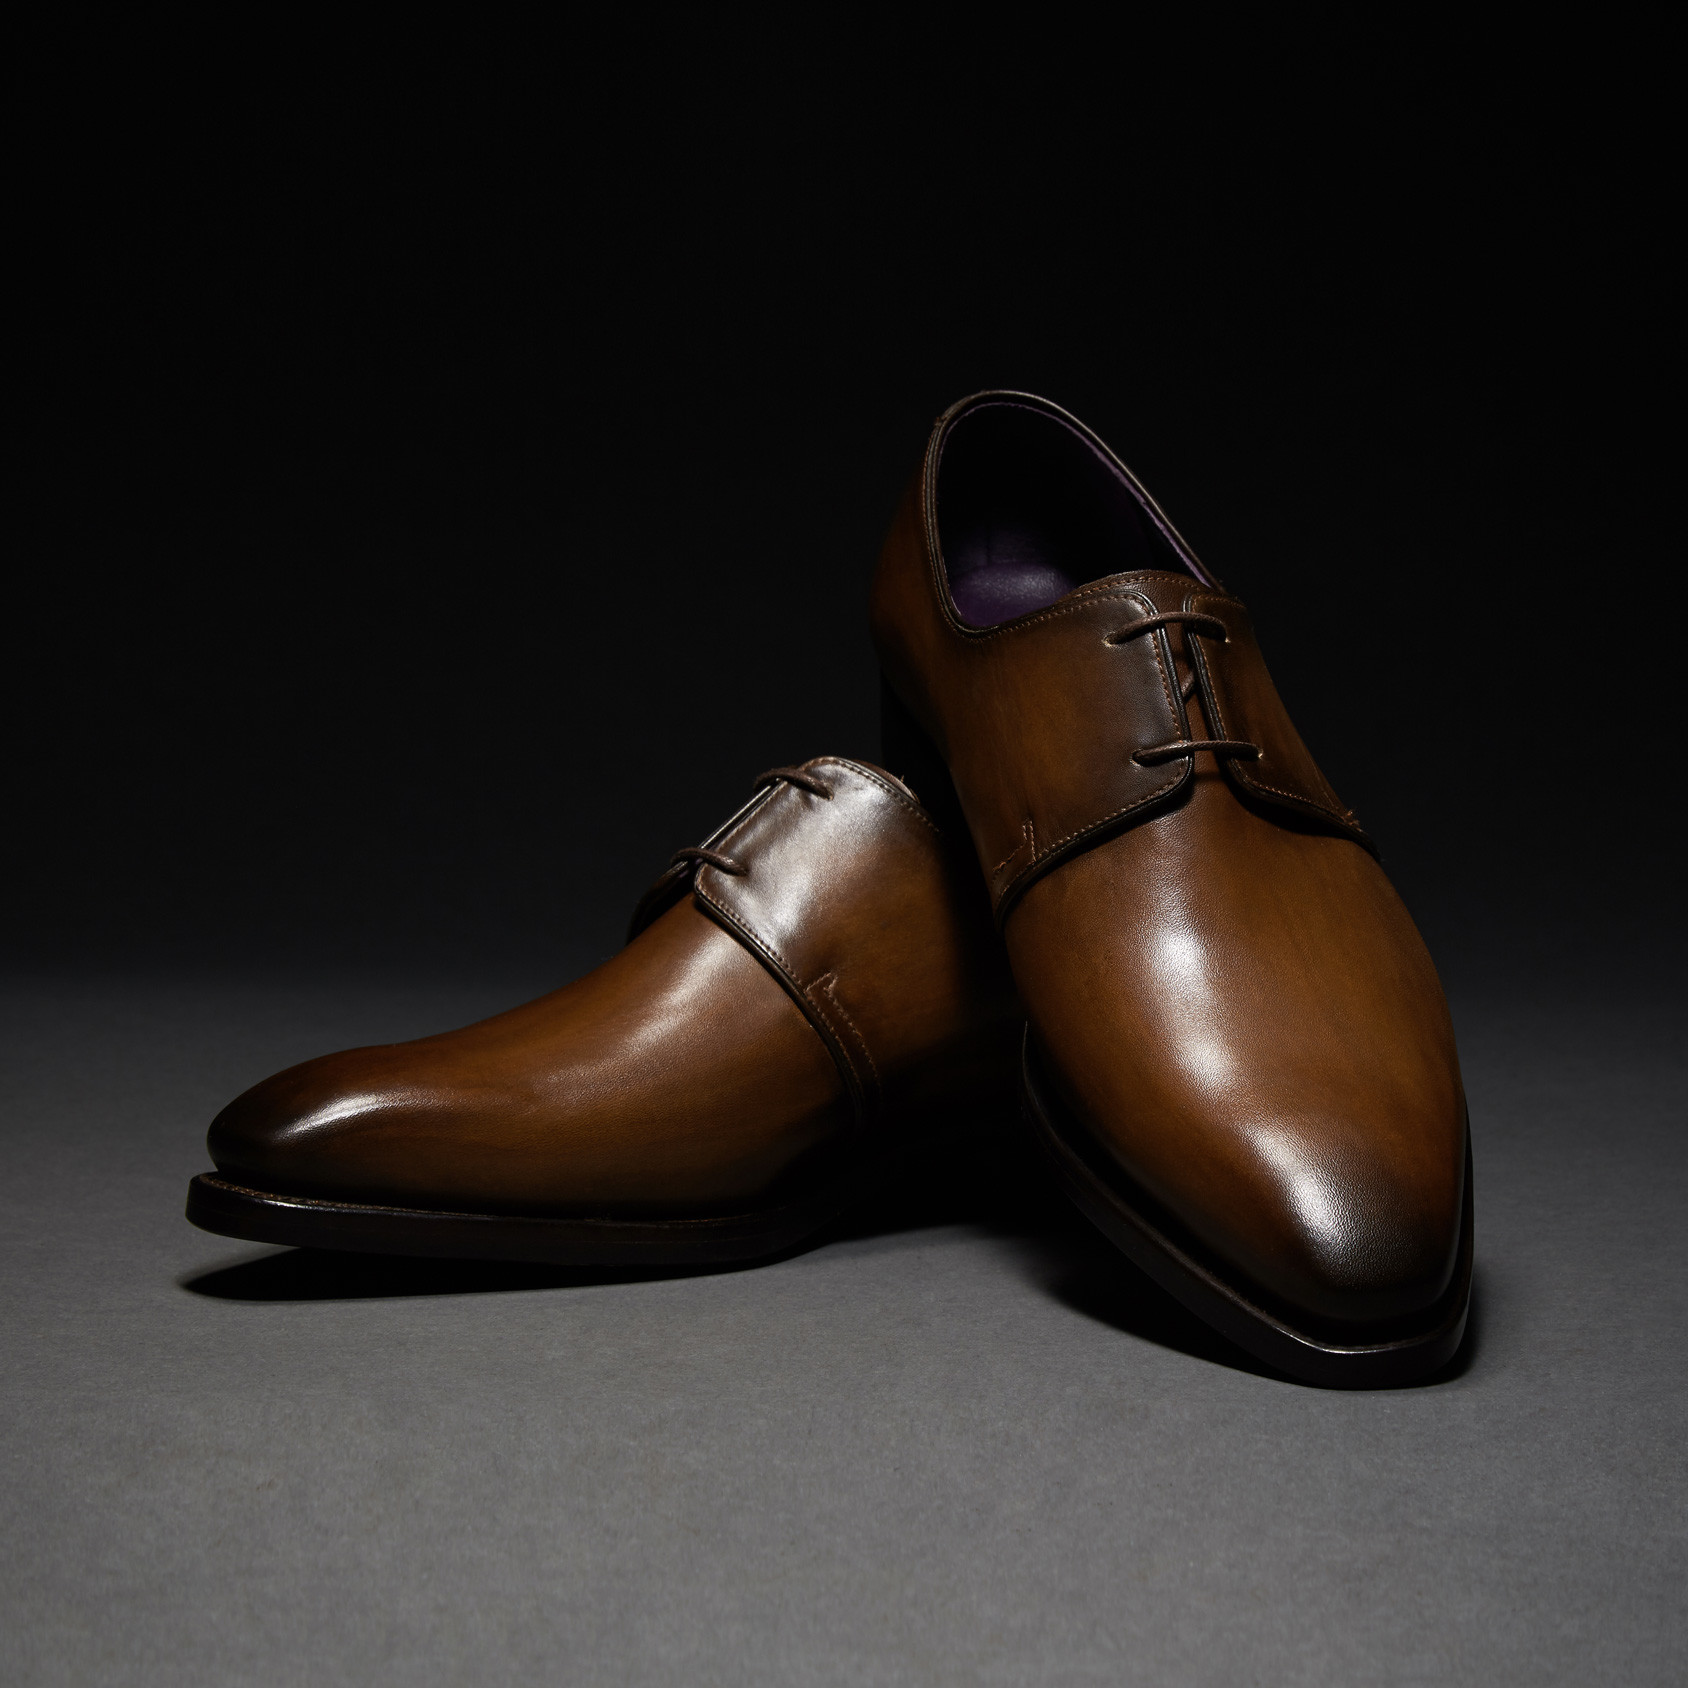 [Custommania X The shuri] PATINA PLAIN TOE DERBY DRB No.471